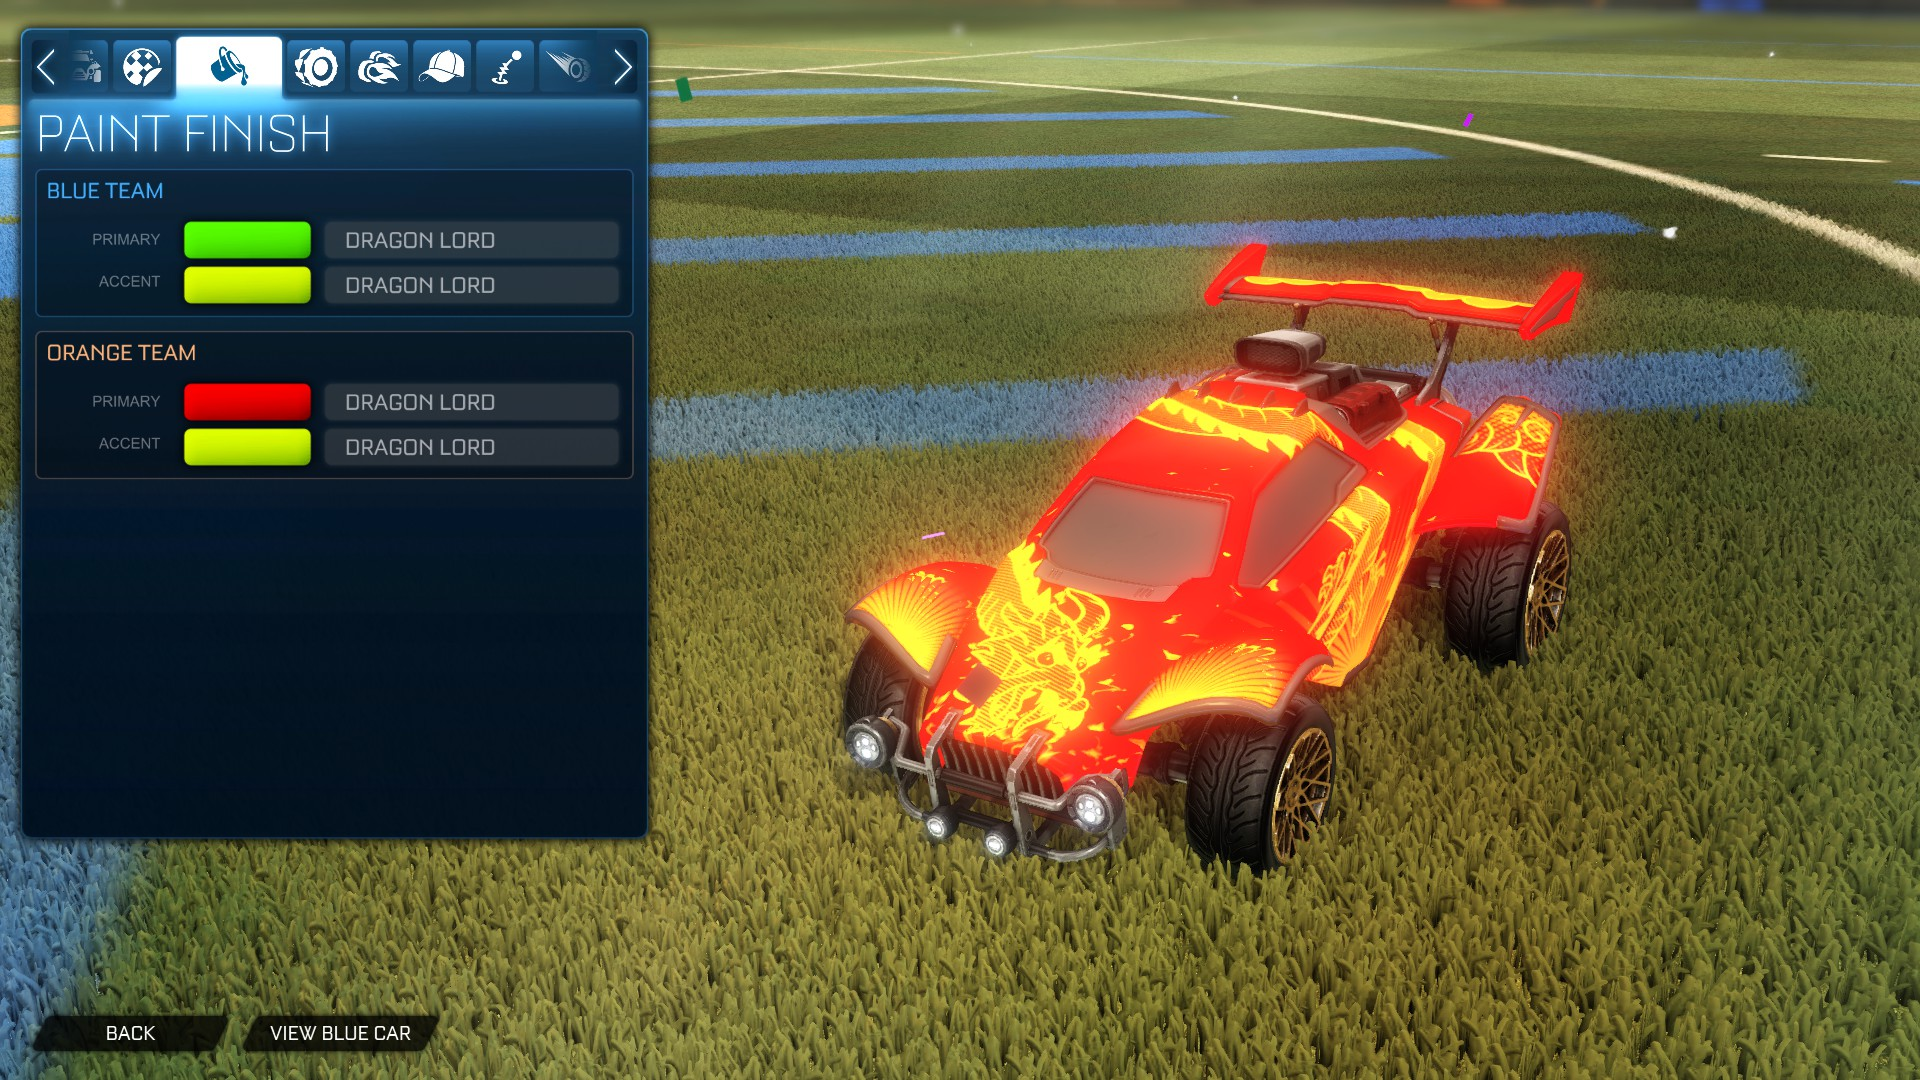 Glow Style for all animated Decals! [Only available for most used cars]